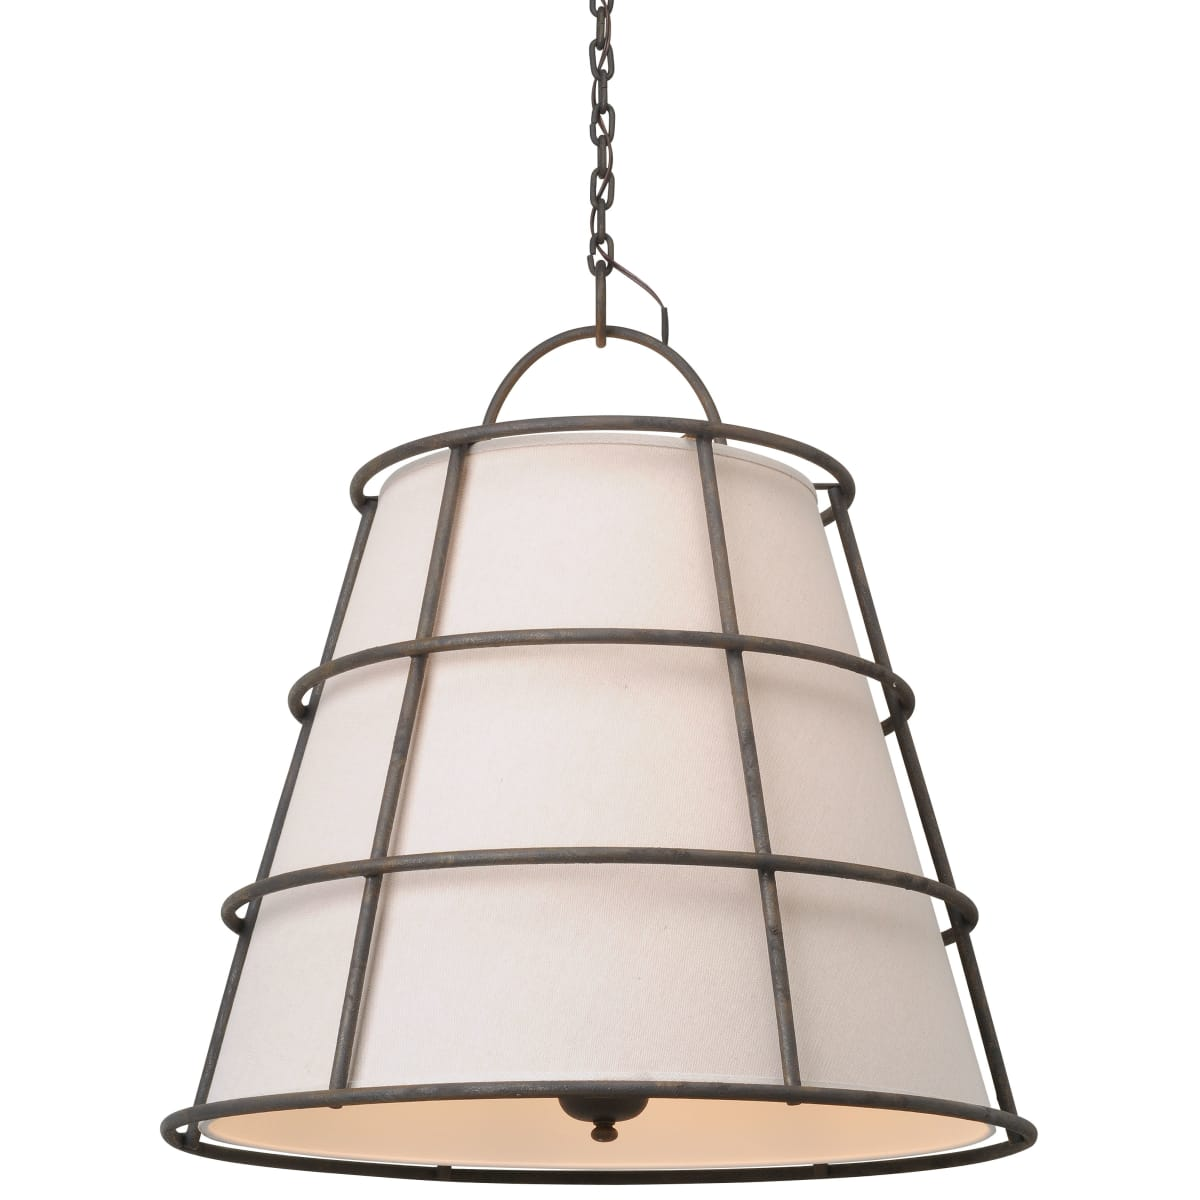 Troy Lighting F3906 Liberty Rust Habitat 6 Light Pendant